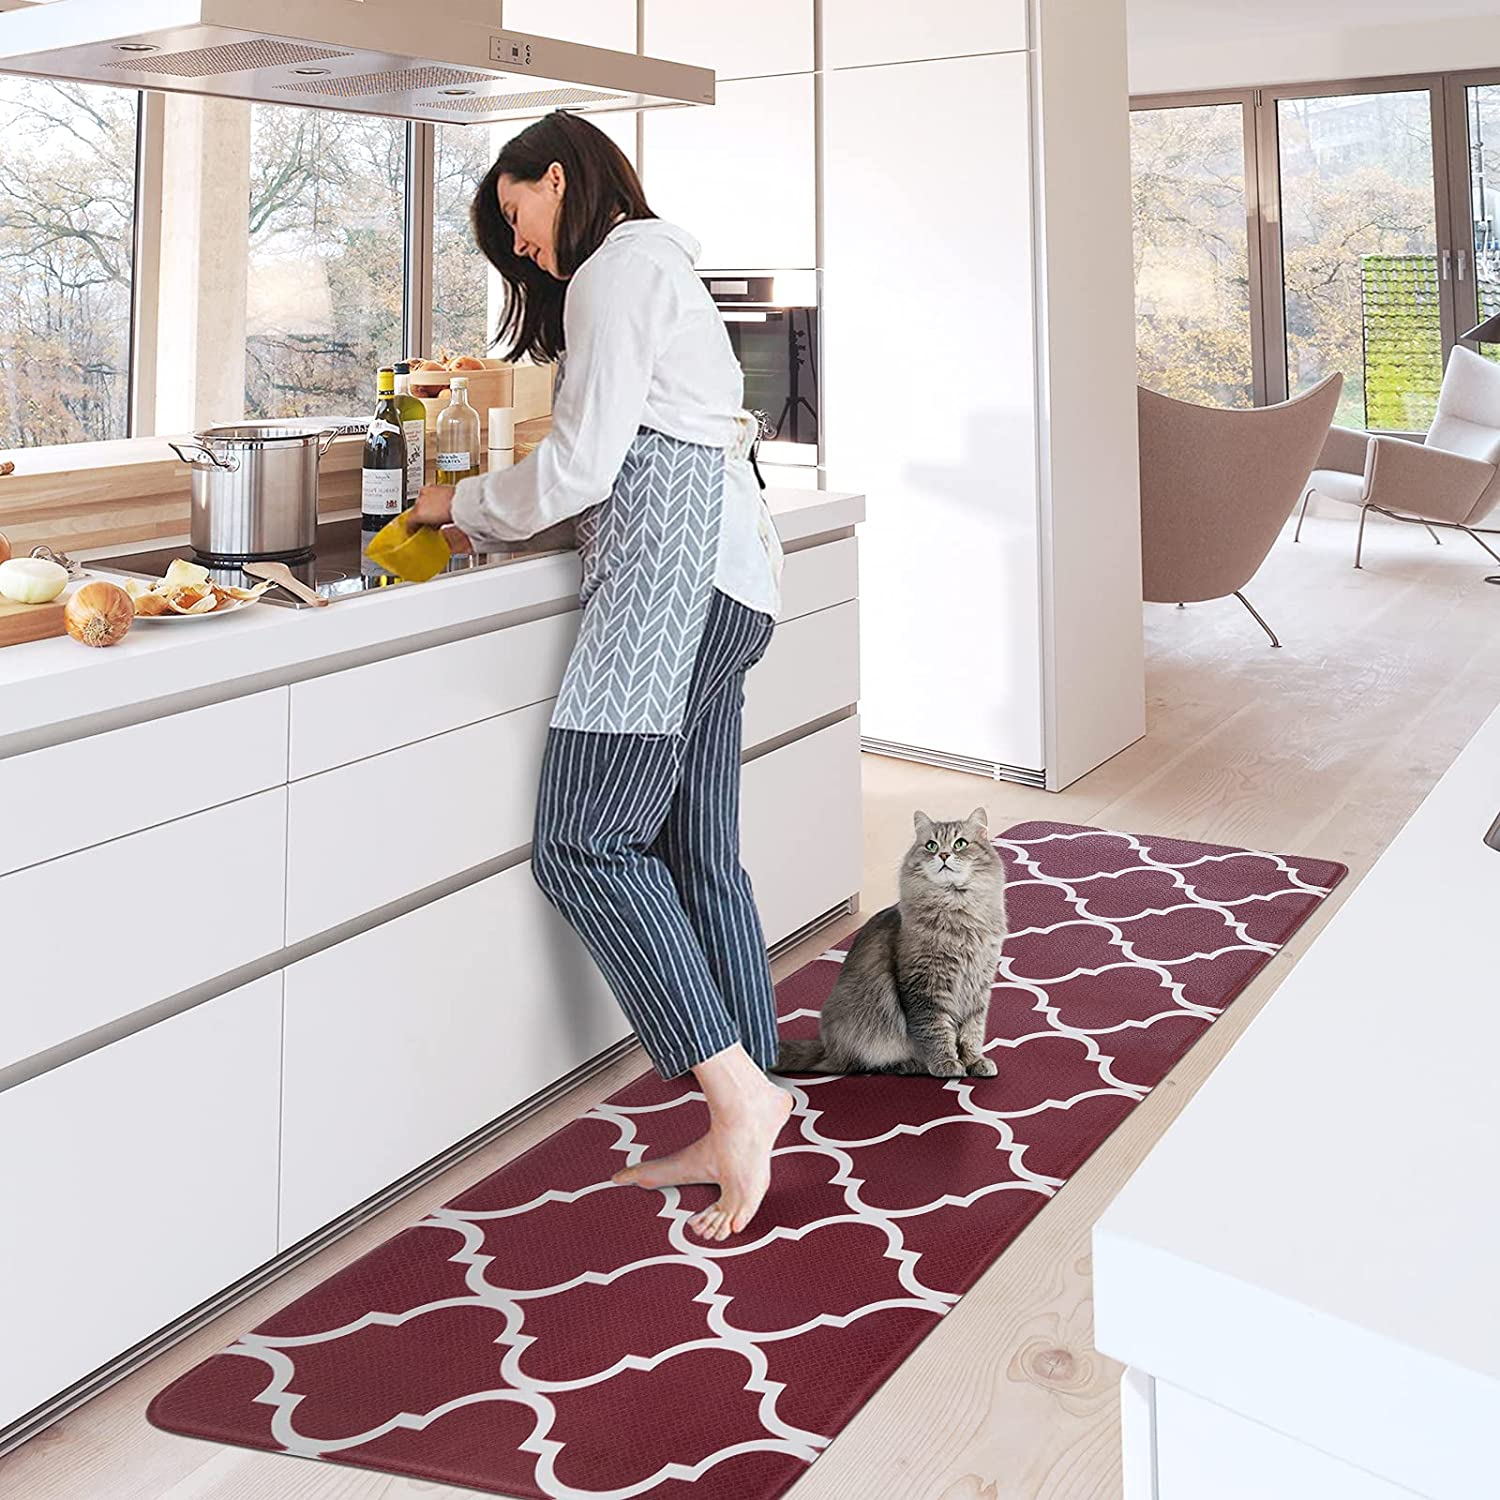 Carvapet Moroccan Large special price Trellis Kitchen Discount mail order Mat Non-Slip Rugs Waterproof C